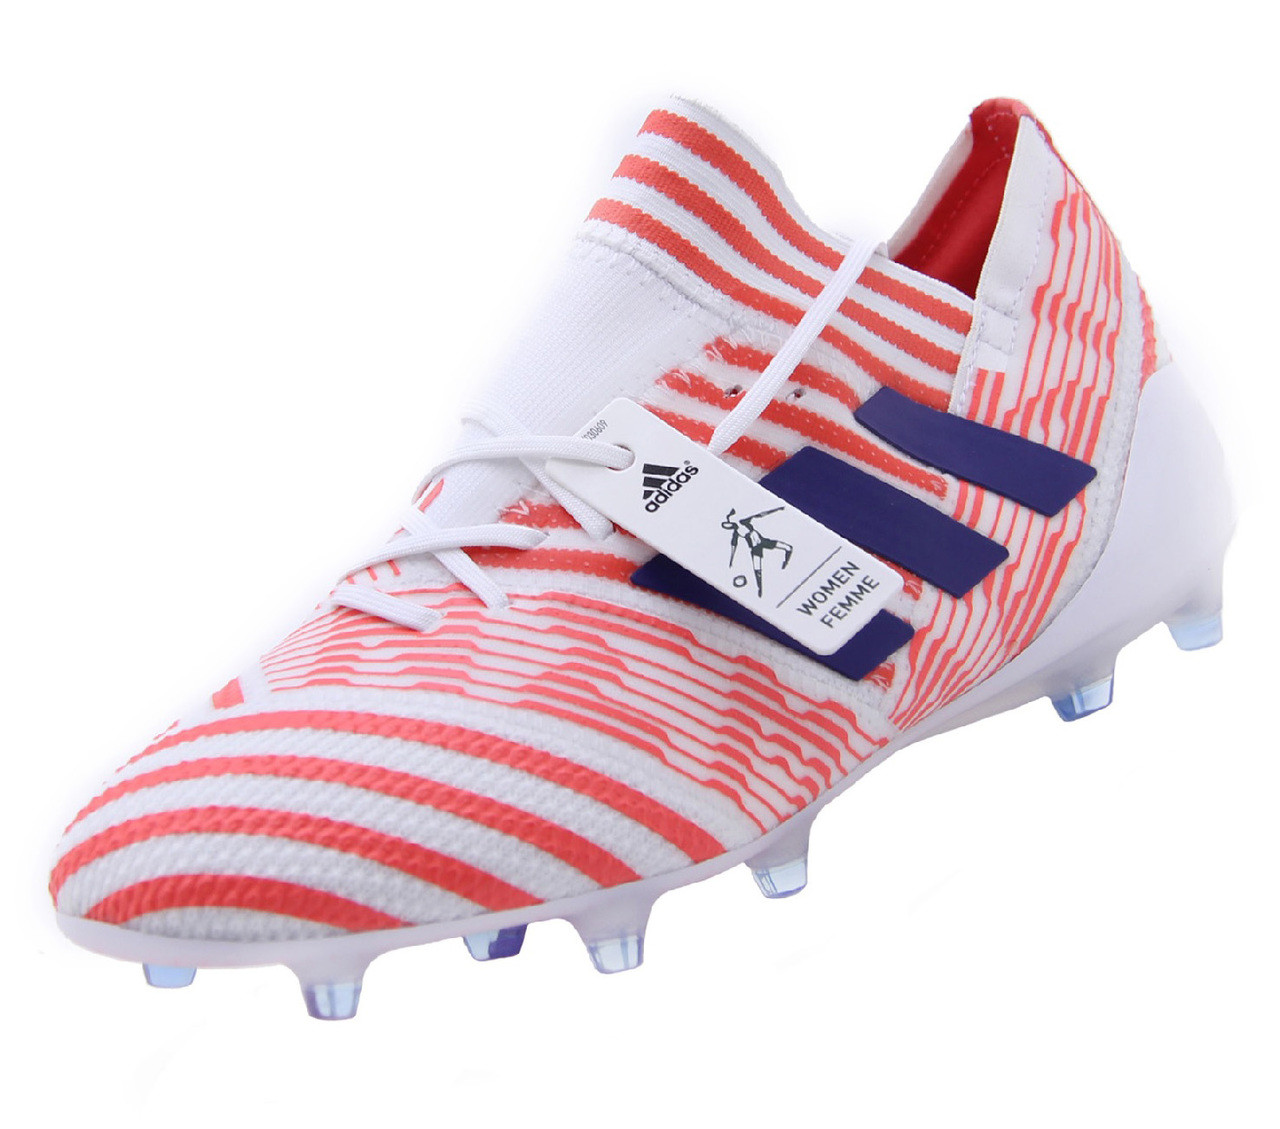 new arrival 61512 3663b Adidas Nemeziz 17.1 FG W - White Mystery Ink Easy Coral - ohp soccer